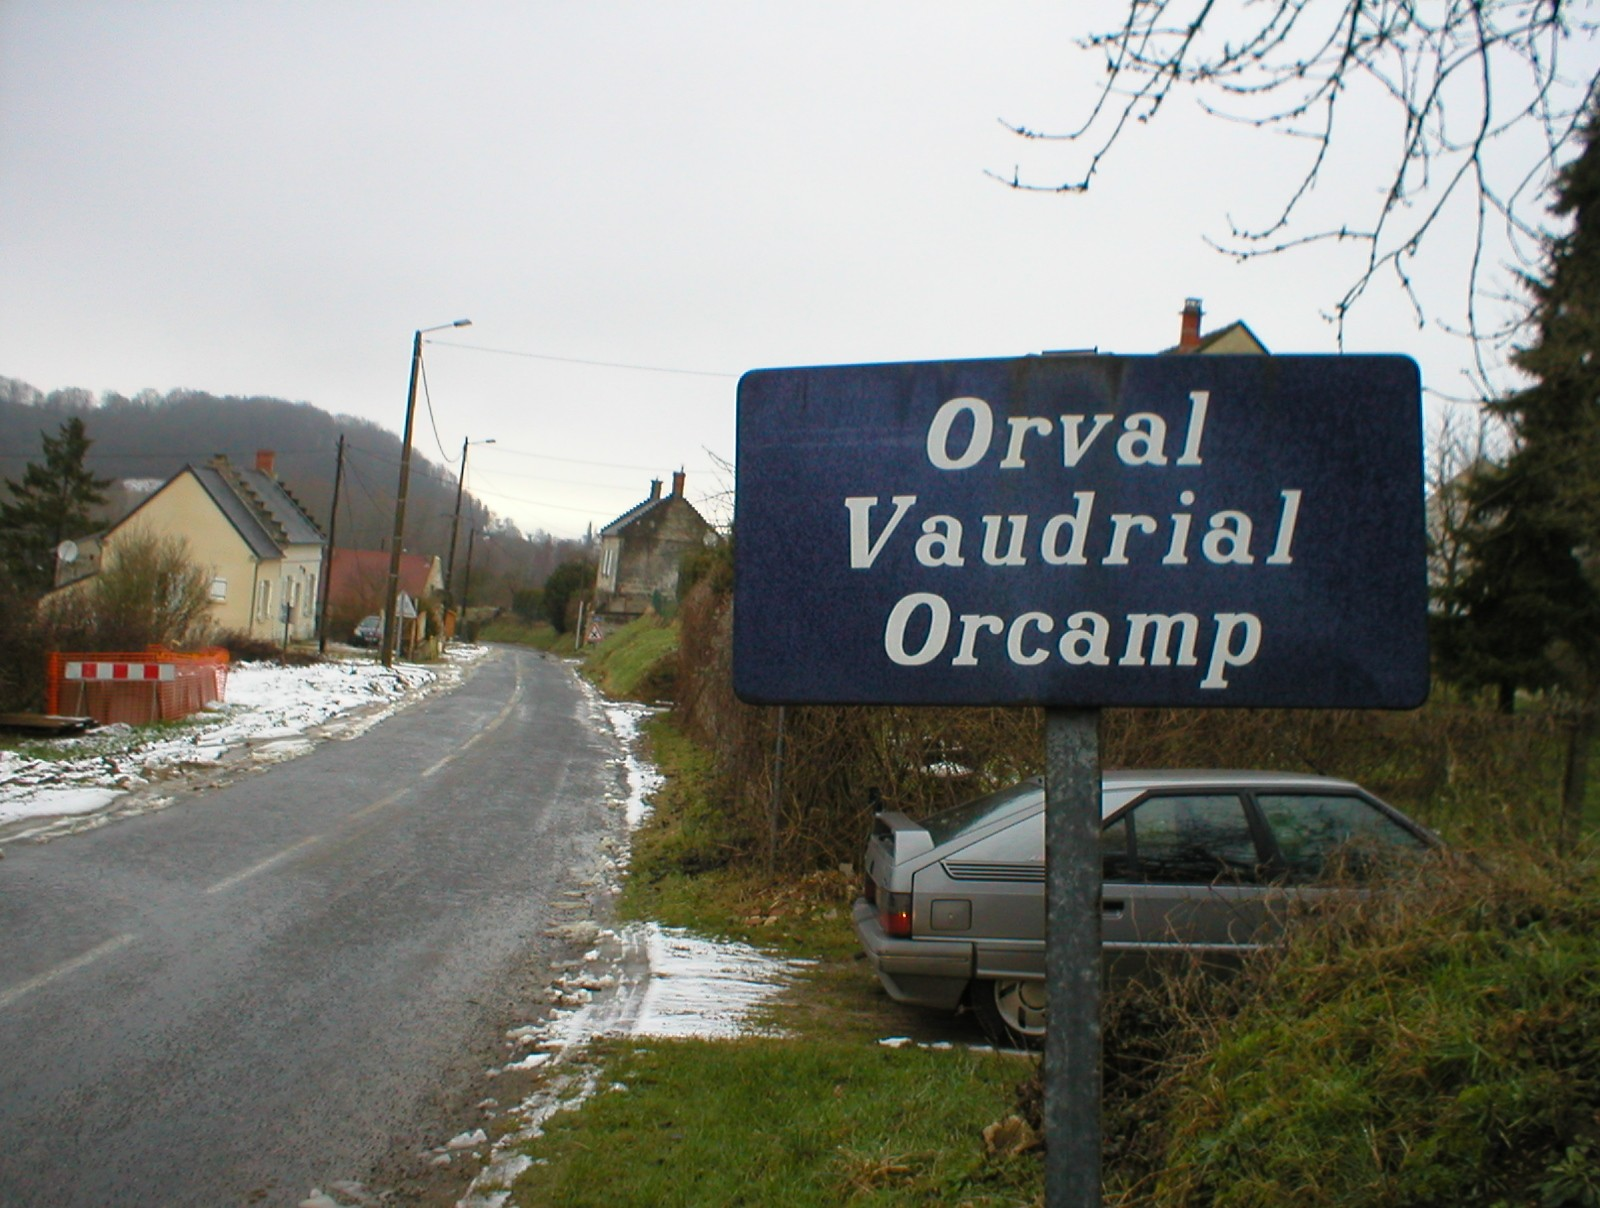 Photo du lieu de naissace: